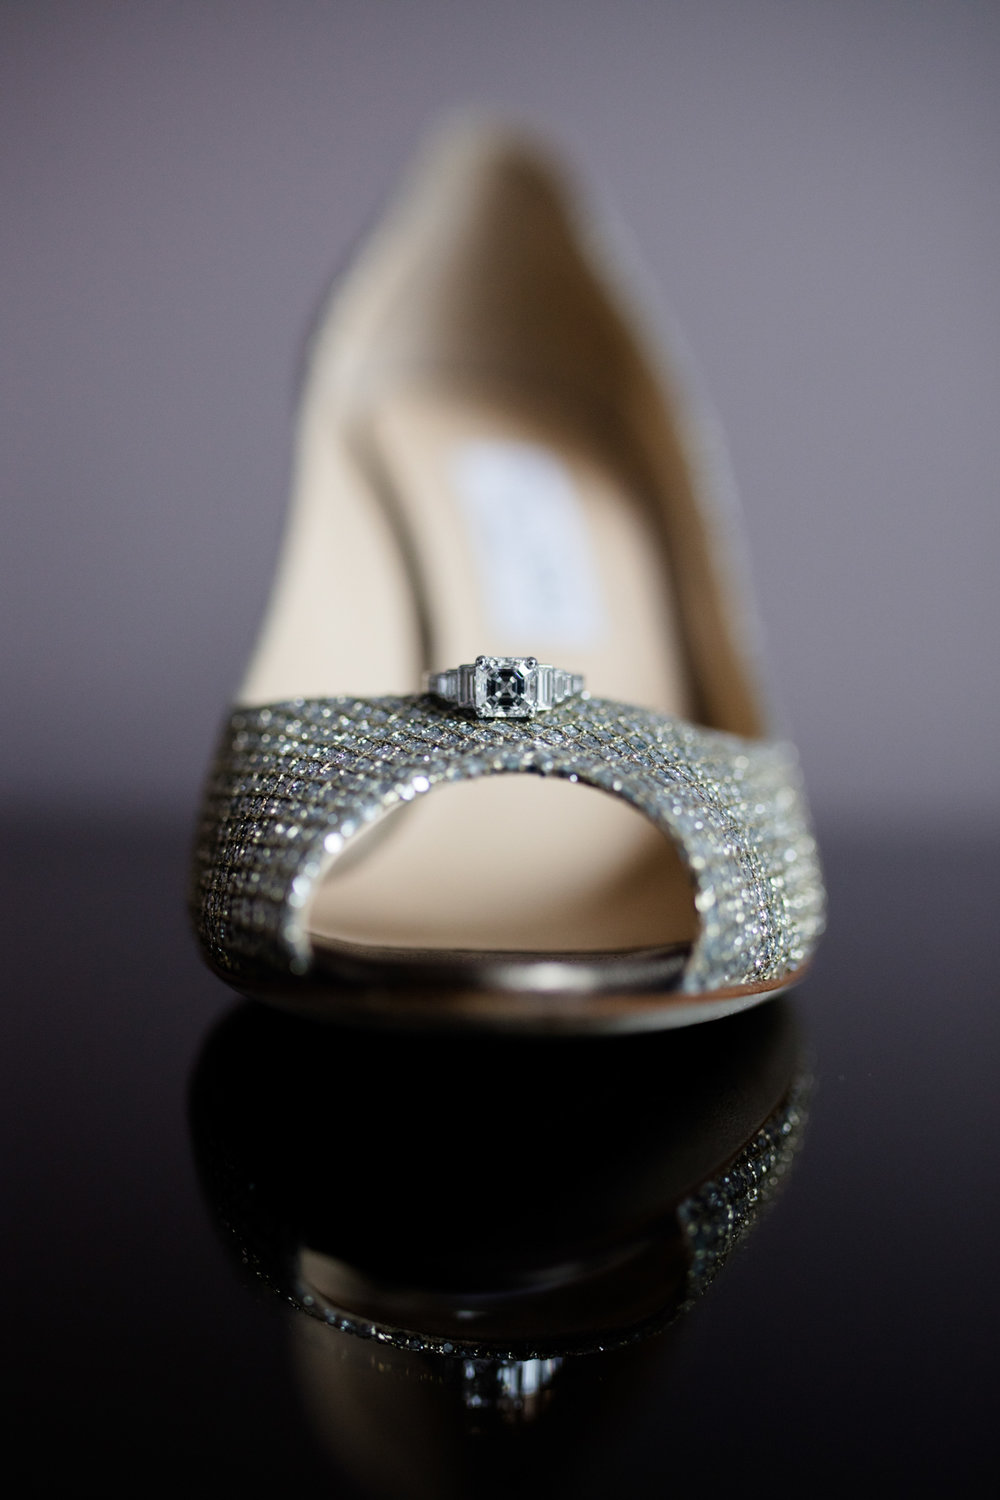 Bride's ring and Jimmy Choo shoes for Chicago Cultural Center wedding.